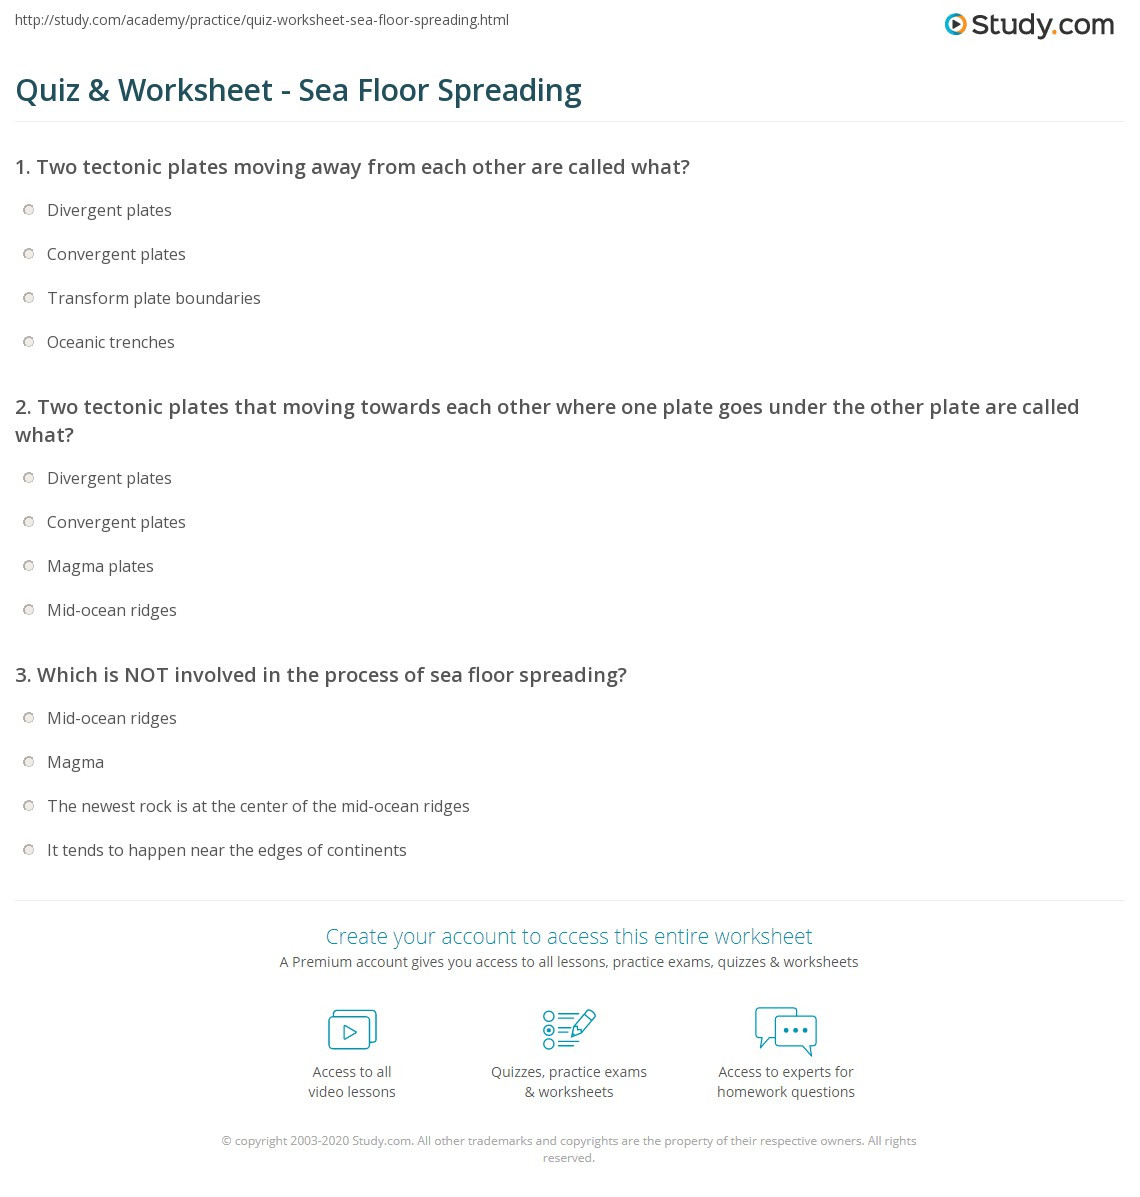 Sea Floor Spreading Worksheet Quiz & Worksheet Sea Floor Spreading